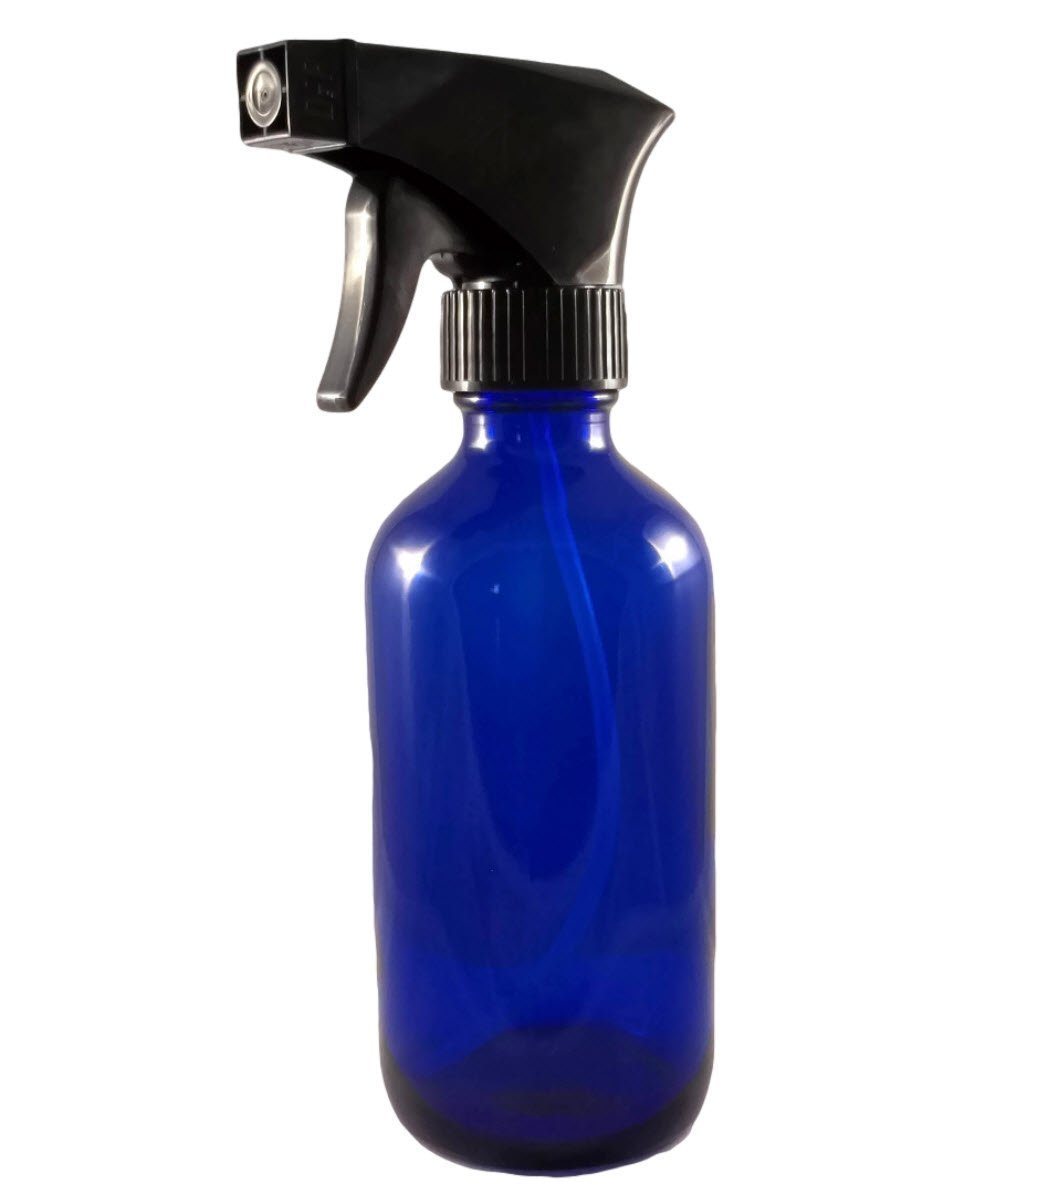 Loving Essential Oils 8 oz Blue Glass Spray Bottle with Trigger Sprayer. Great for Essential Oil, Aromatherapy, Natural Cleaning Products, Homemade DIY Recipes Free Pipettes & Stainless Steel Funnel